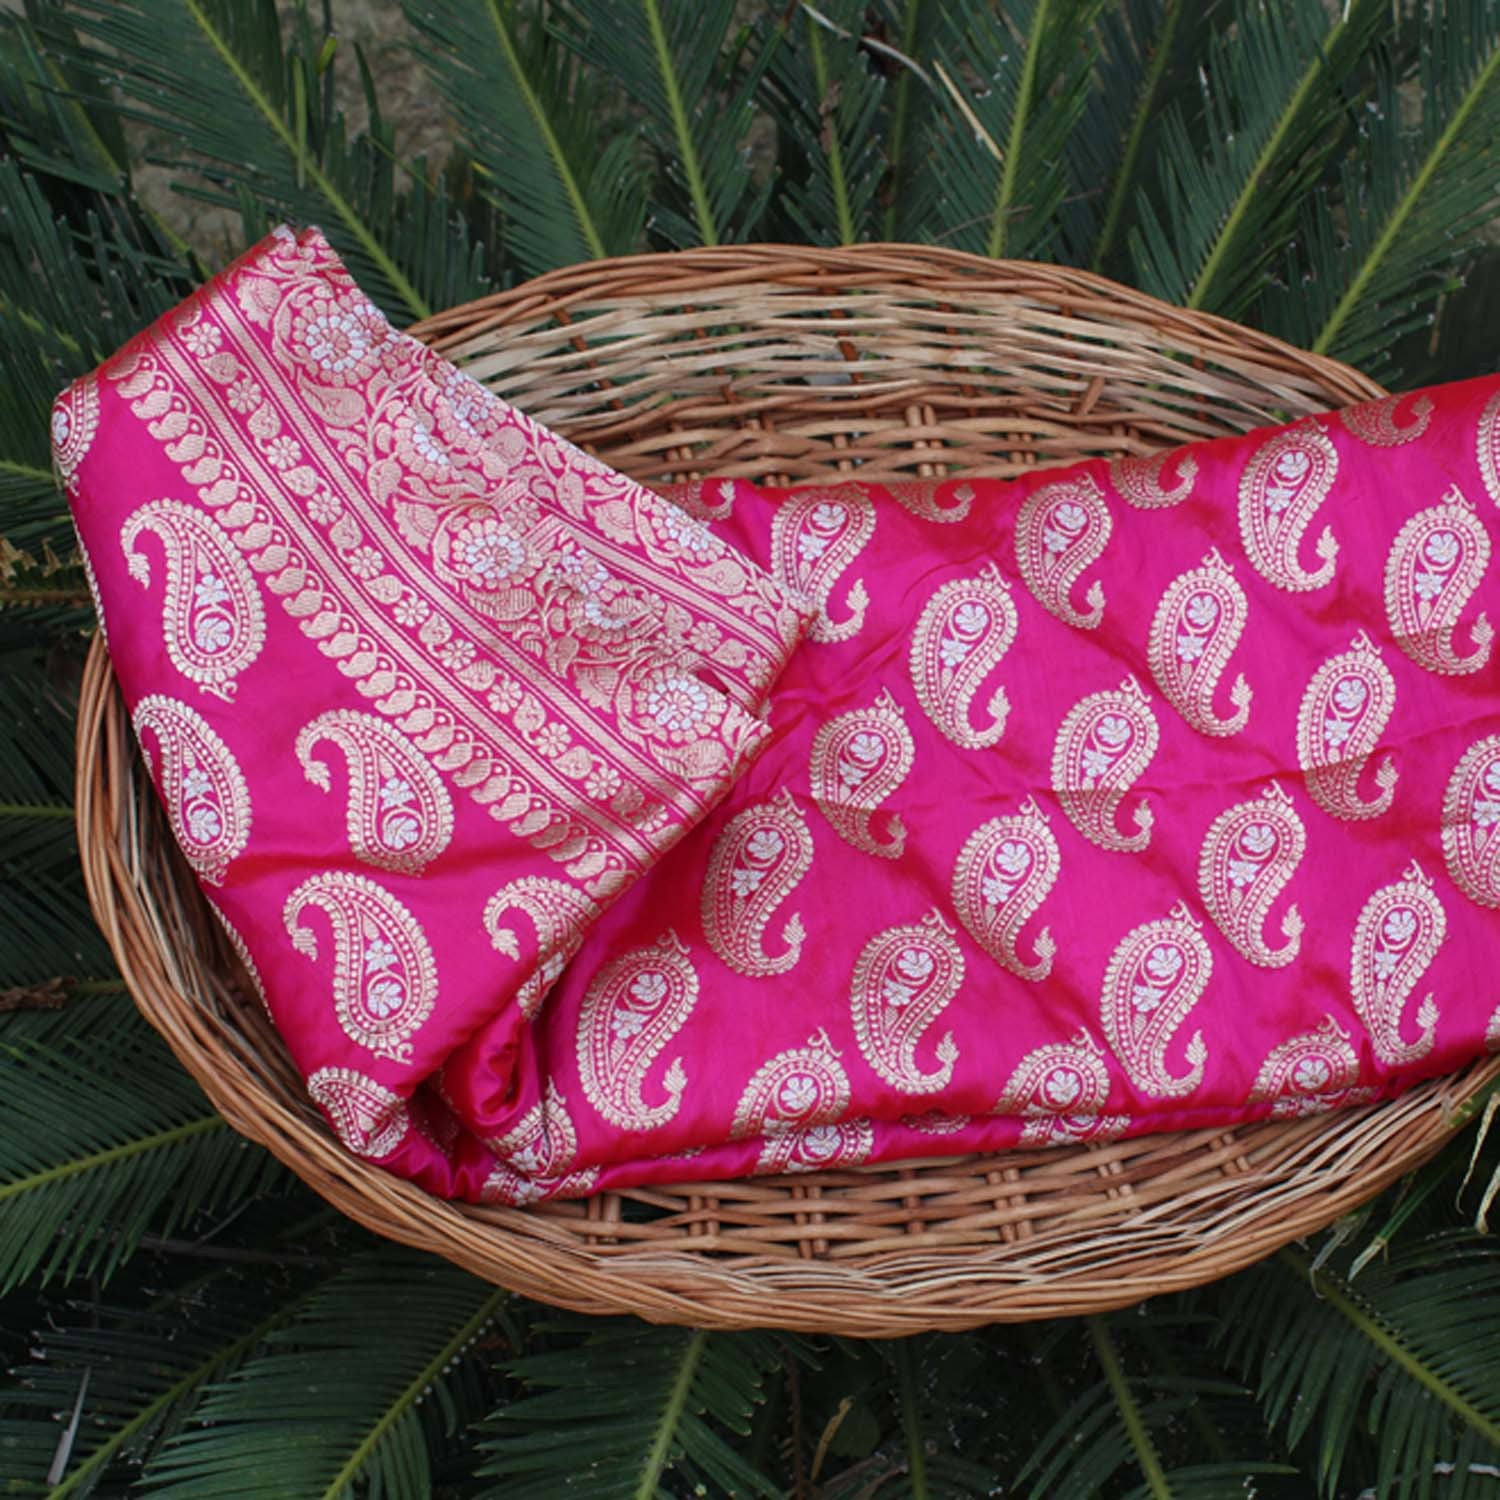 Red-Indian Pink Shot Color Pure Katan Silk Banarasi Handloom Saree - Tilfi - 1